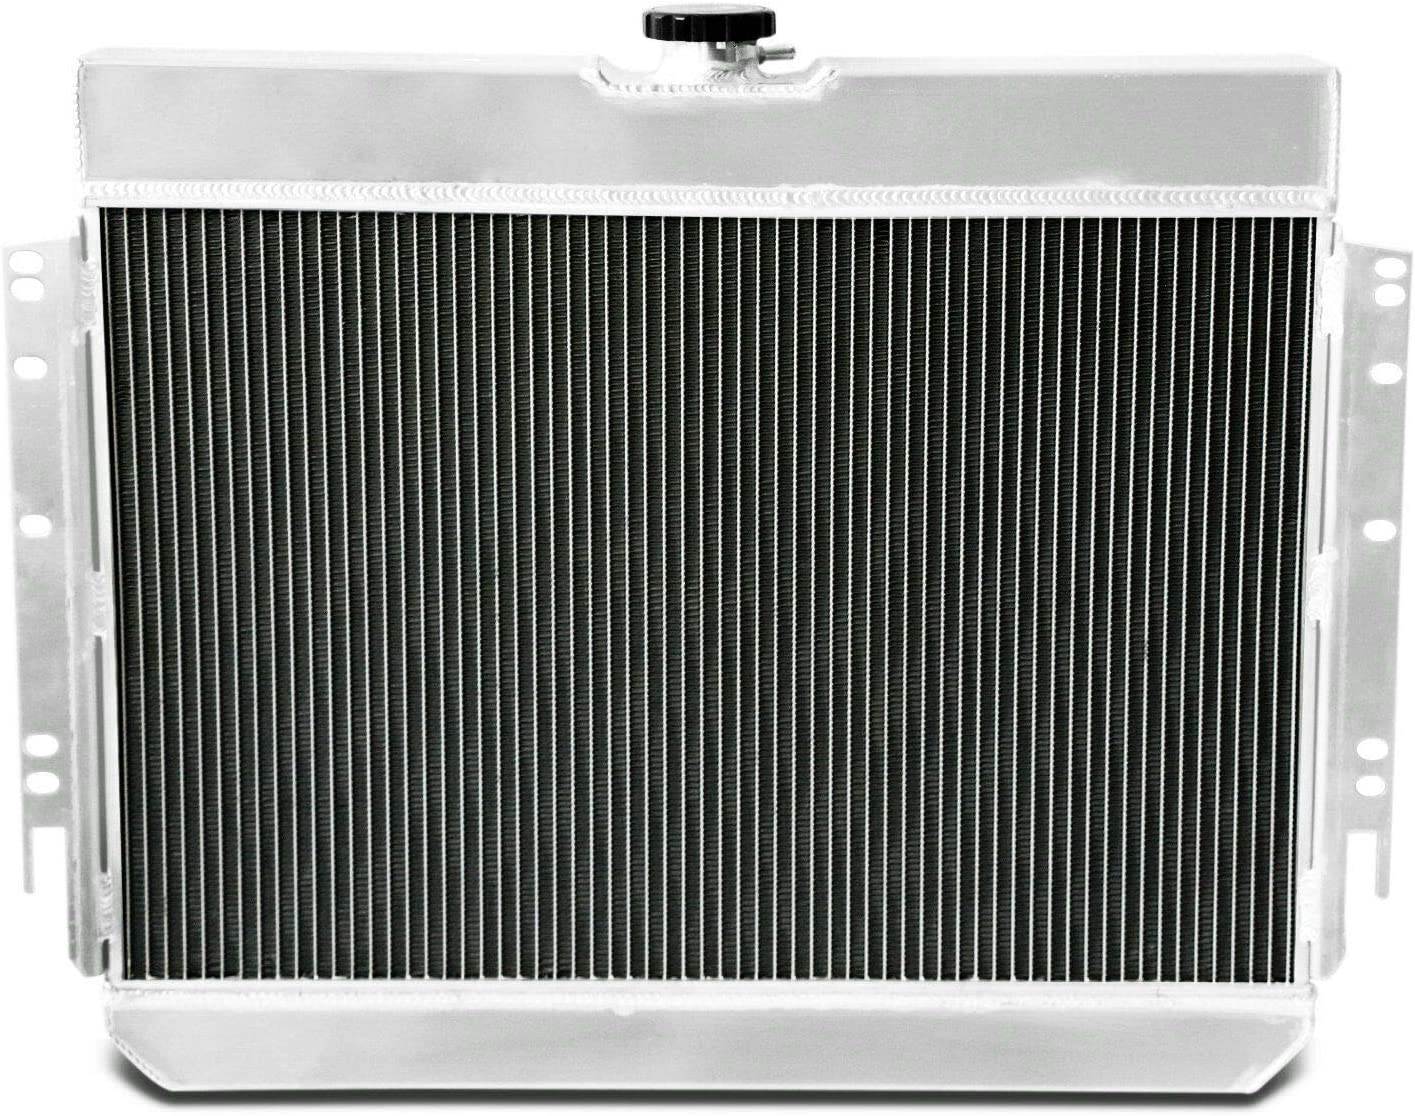 12 Fans for 1963-1968 Chevy Multiple Models Bel Air Caprice El Camino Impala Louver Shroud CoolingCare 4 Row Radiator